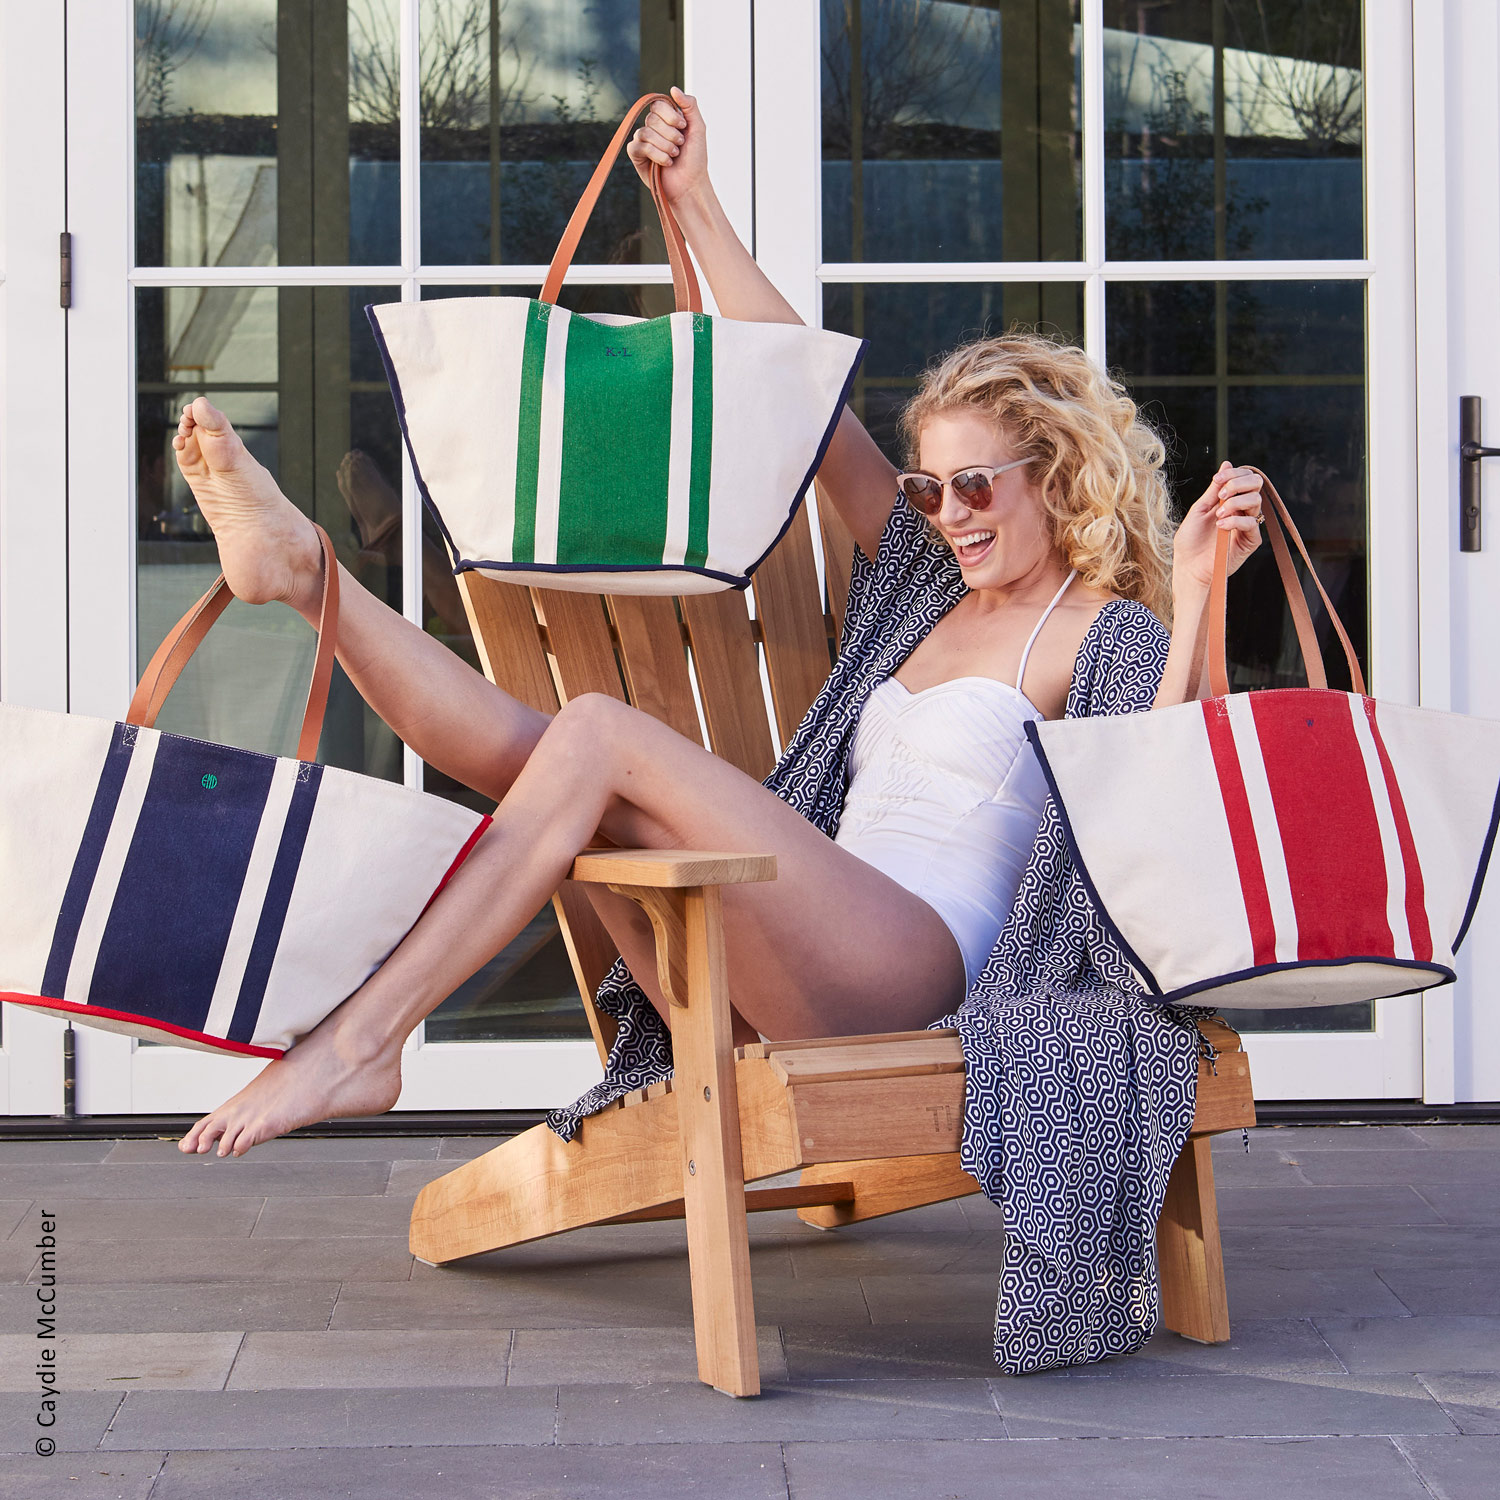 catalog shoot photo of laughing female model in a bathing suit sitting in a wooden chair holding three bold striped beach bags